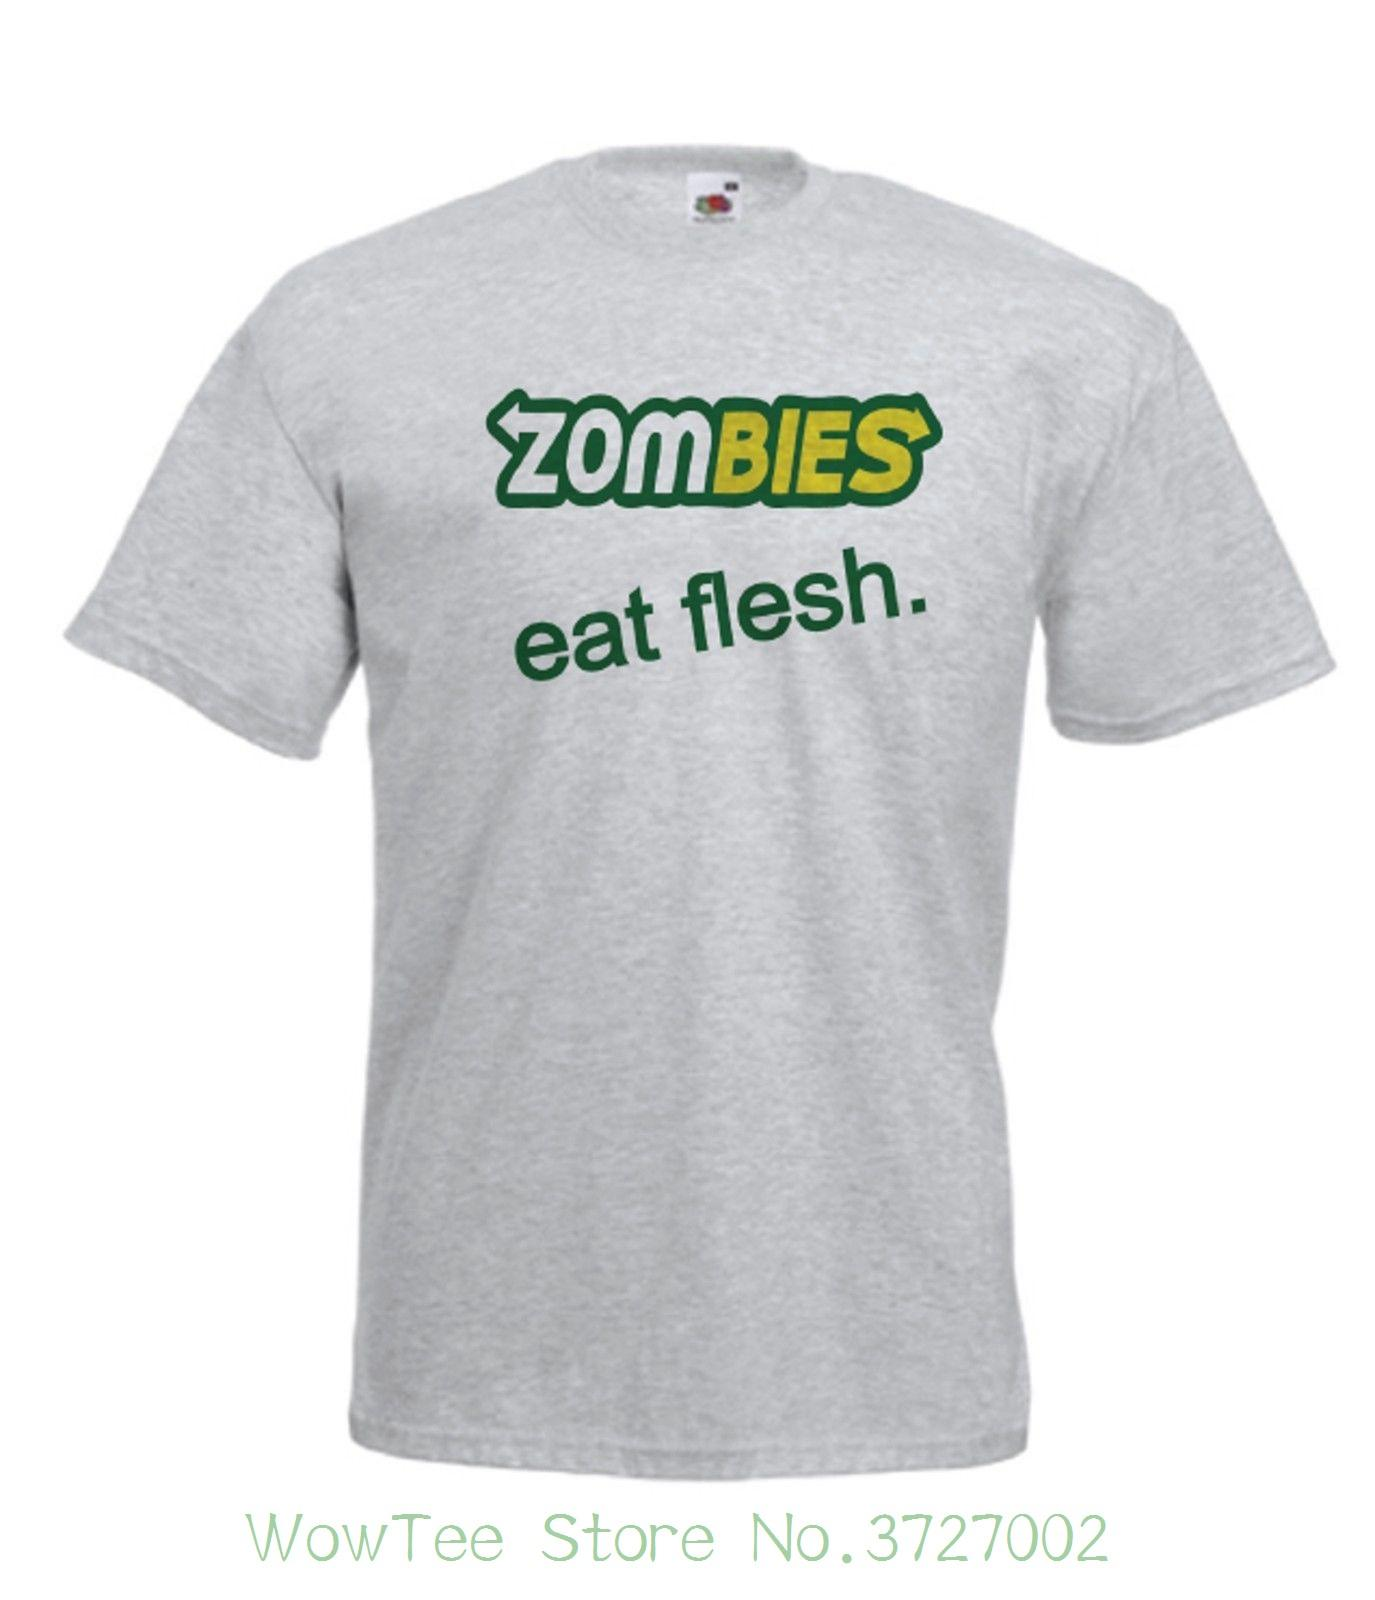 872ad7b800f Zombies Eat Funny Zombie New Men Women T Shirts Top Size 8 10 12 14 ...